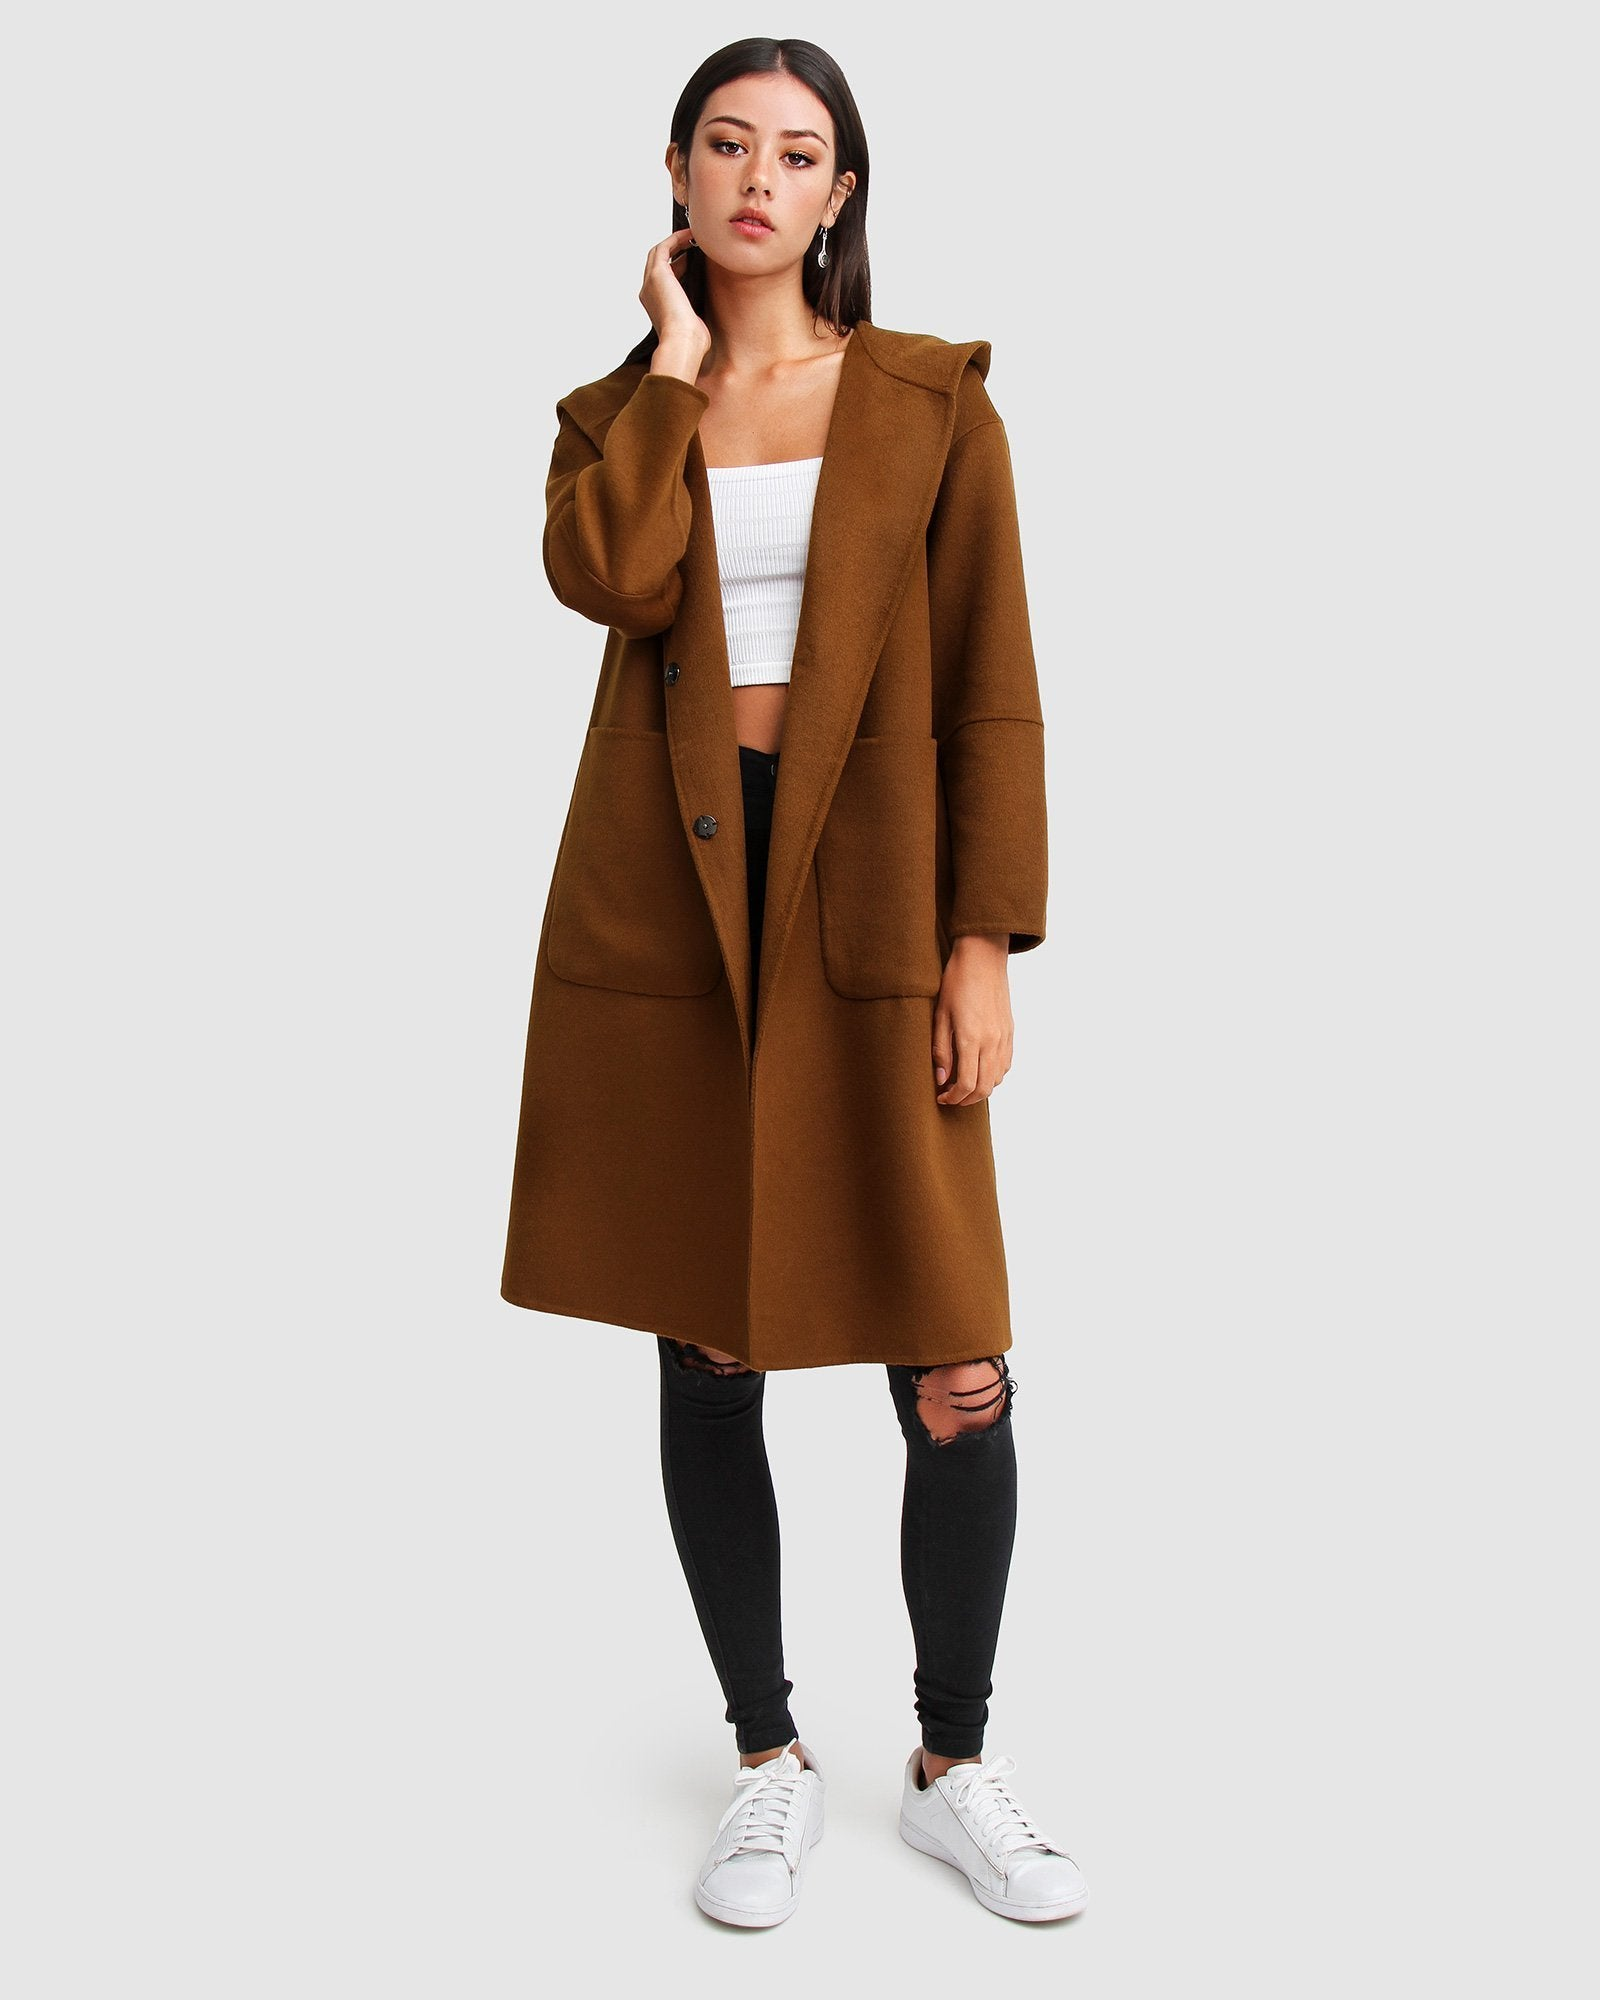 walk-this-way-oversized-wool-coat-dark-caramel-front.jpg